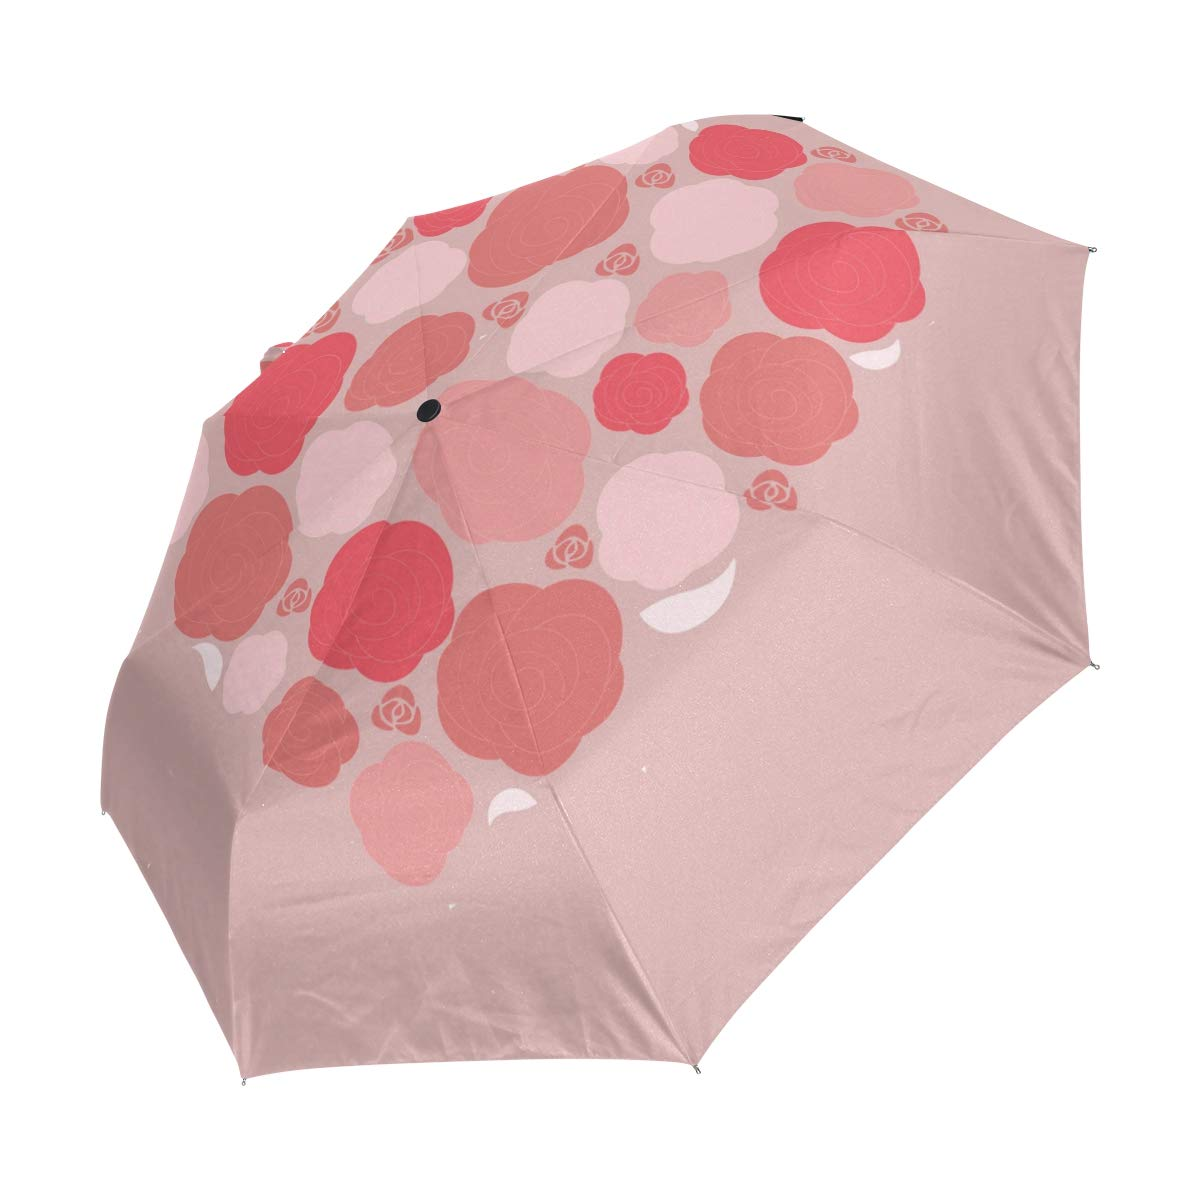 b382a8c06d7e Amazon.com: imobaby Valentine's Heart Indestructible Windproof ...